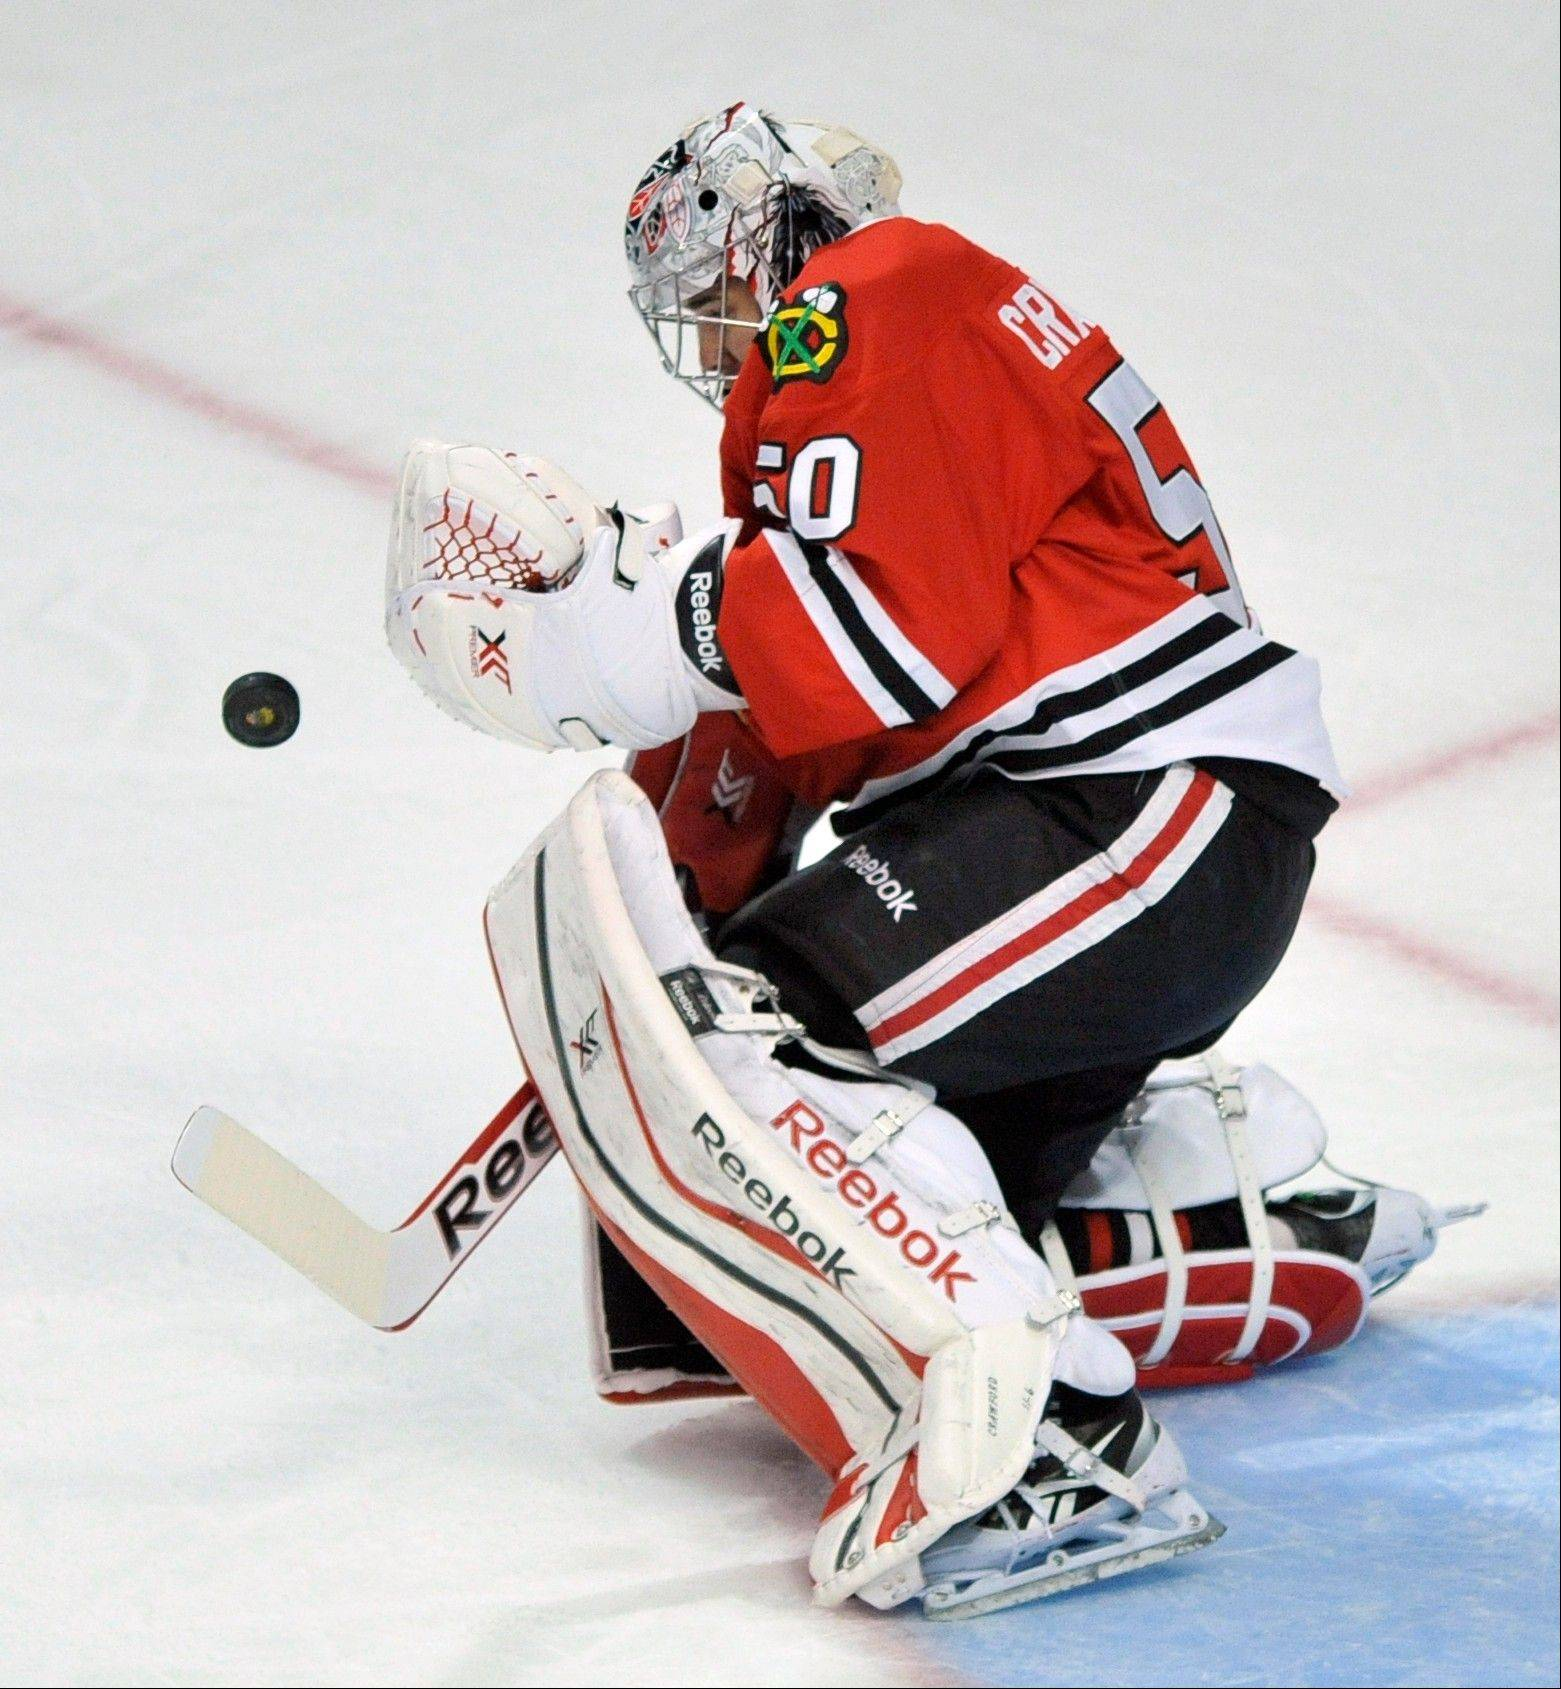 Chicago Blackhawks goalie Corey Crawford makes a save during the third period of an NHL hockey game against the San Jose Sharks in Chicago, Sunday, Jan., 5, 2014. San Jose won 3-2 in a shootout.